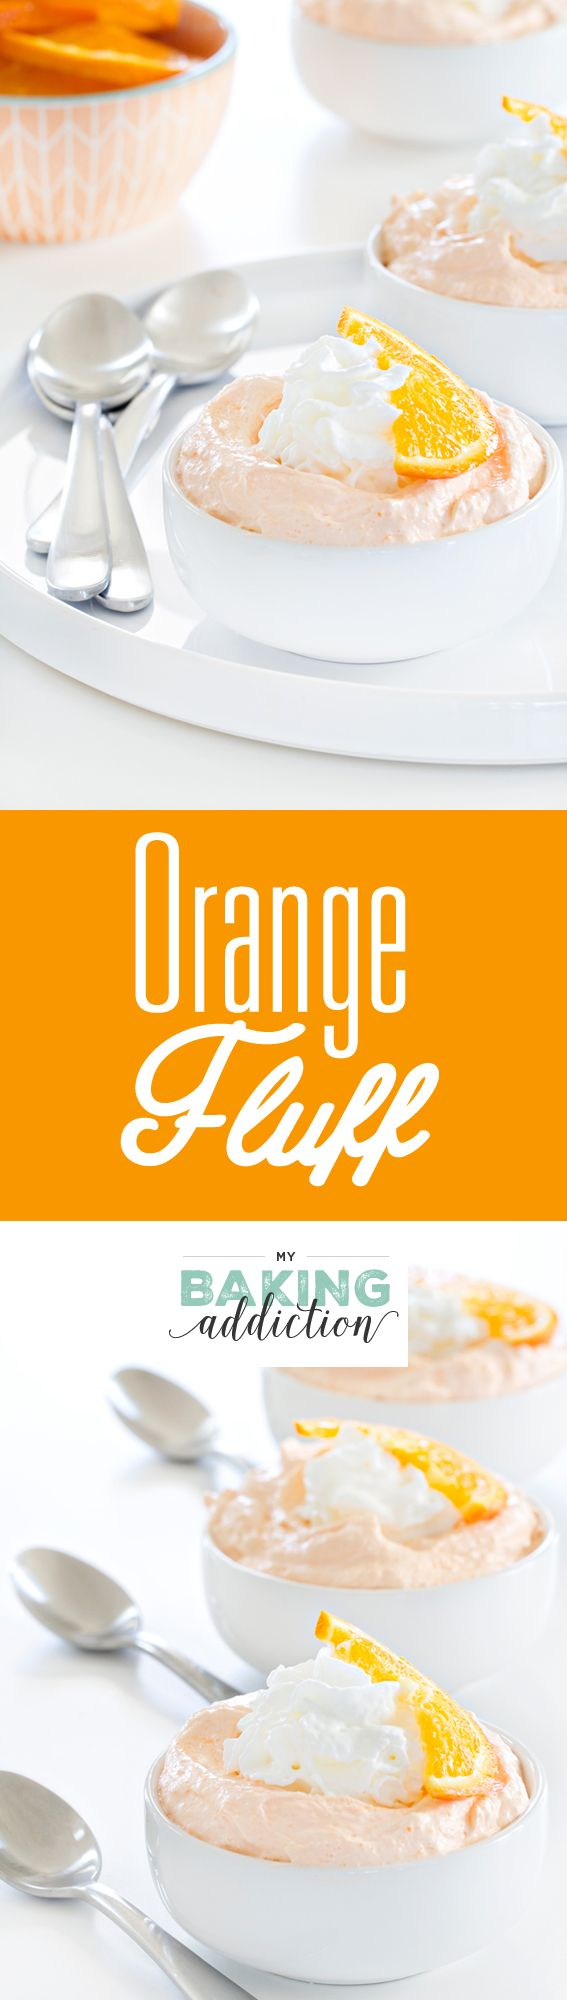 Orange Fluff comes together in a matter of minutes to create a dreamy, fluffy dessert that is great for just about any occasion.